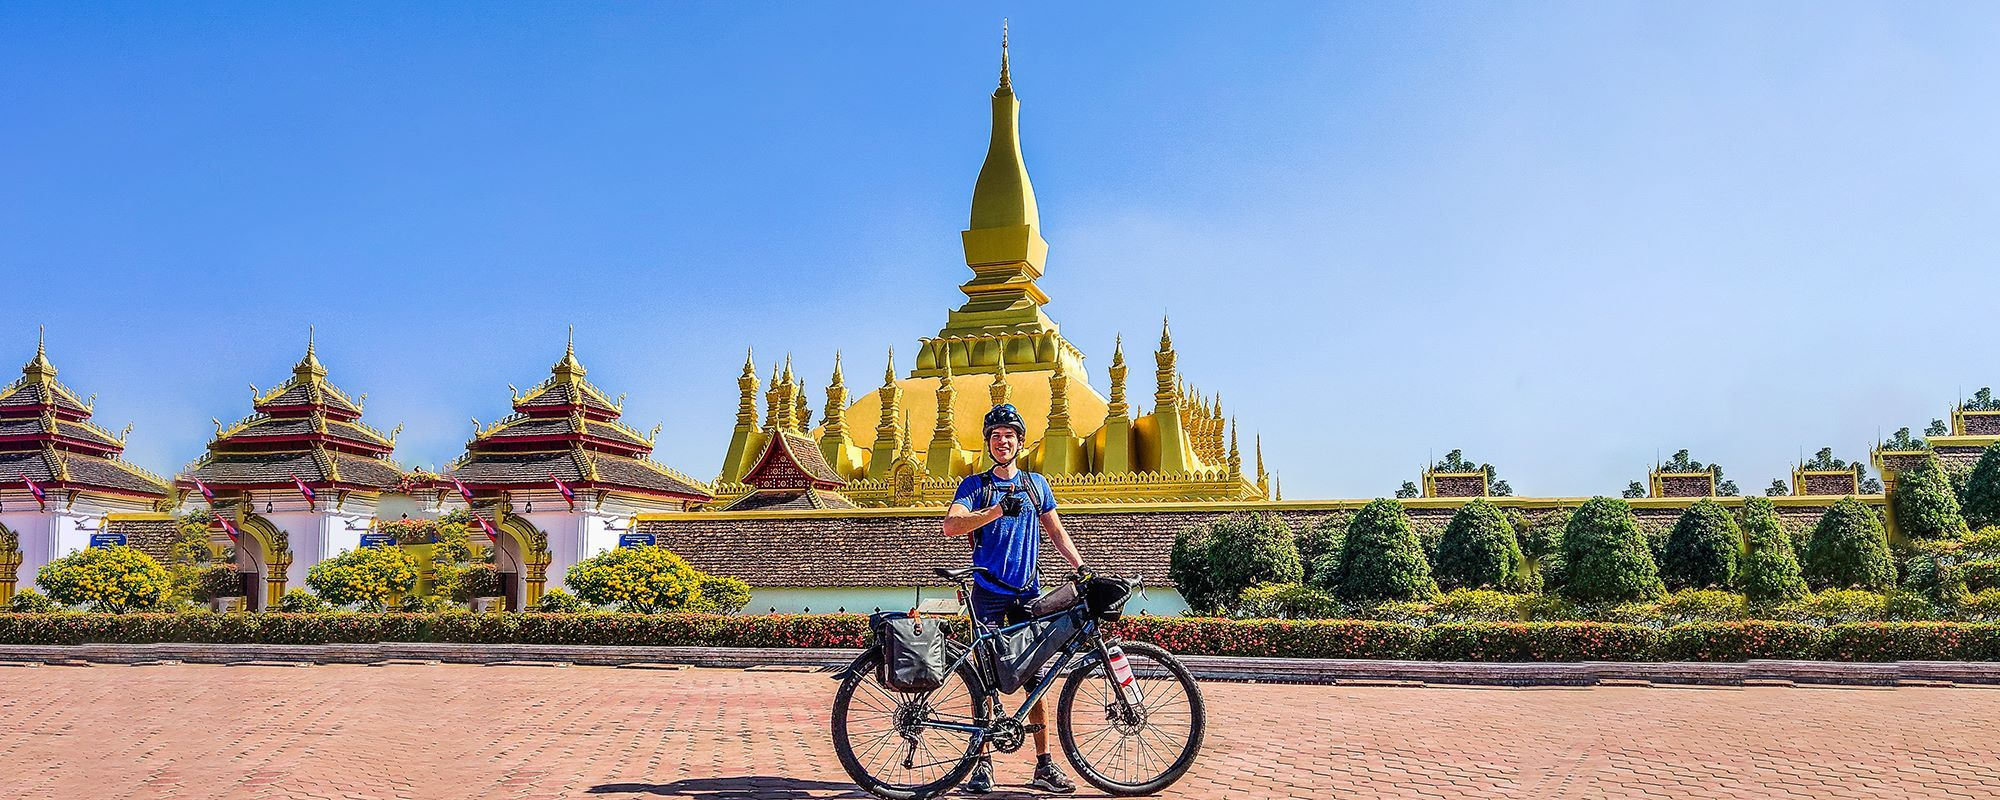 Laos Bike Tour: Adventure in the Land of Millions of Elephants (Travelogue, Route & Tips)